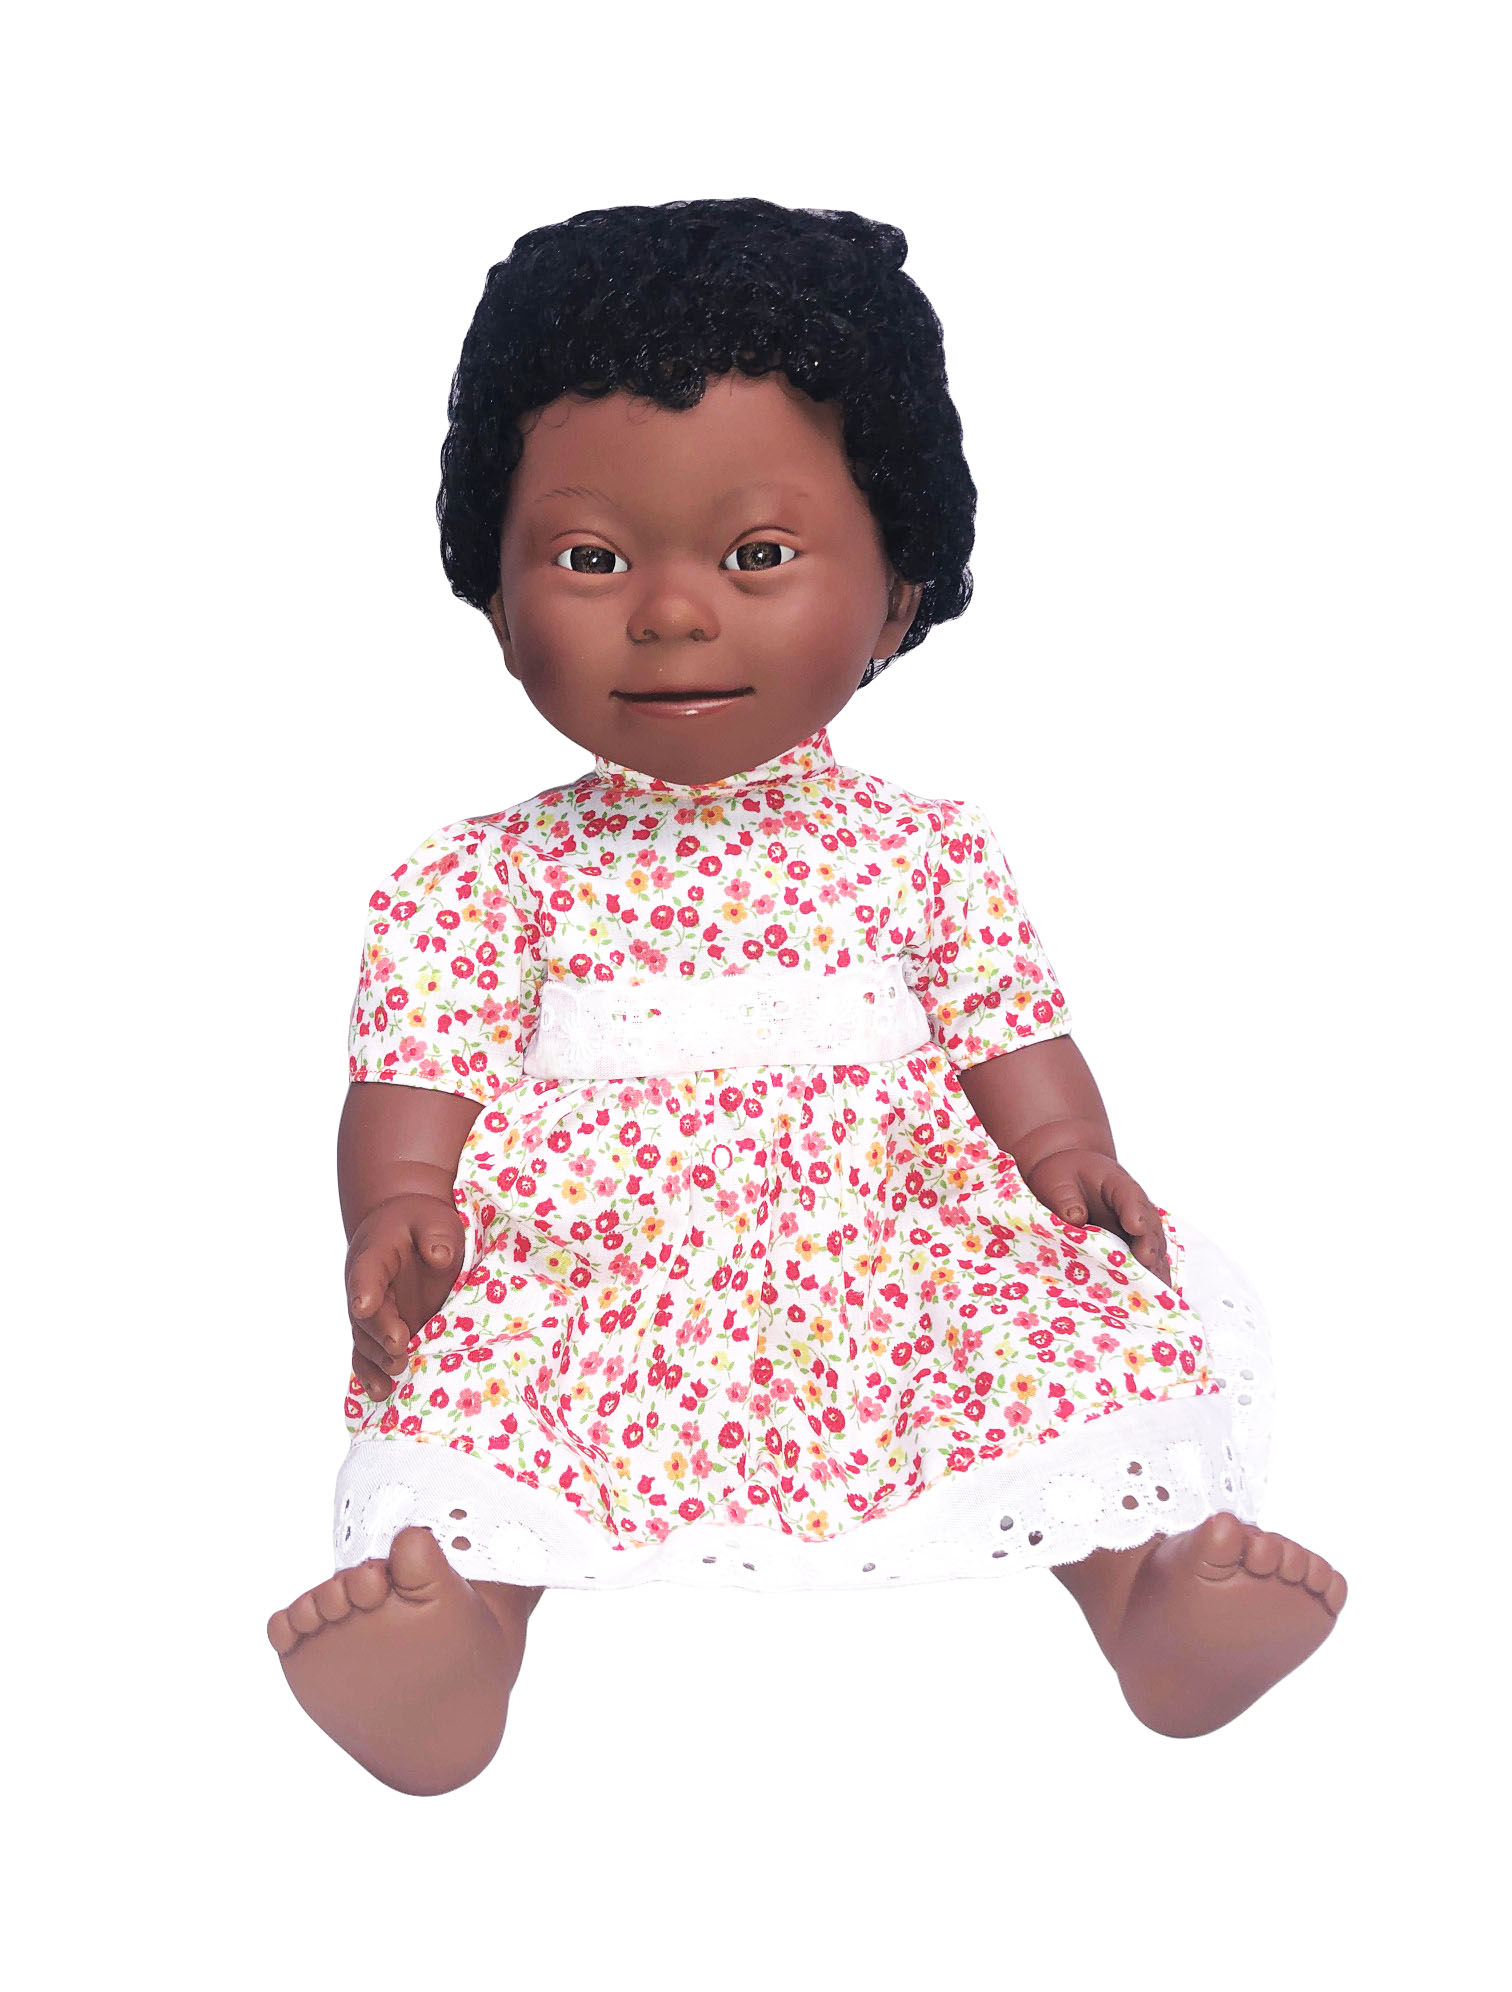 Baby Dolls Vip Baby Doll With Down Syndrome